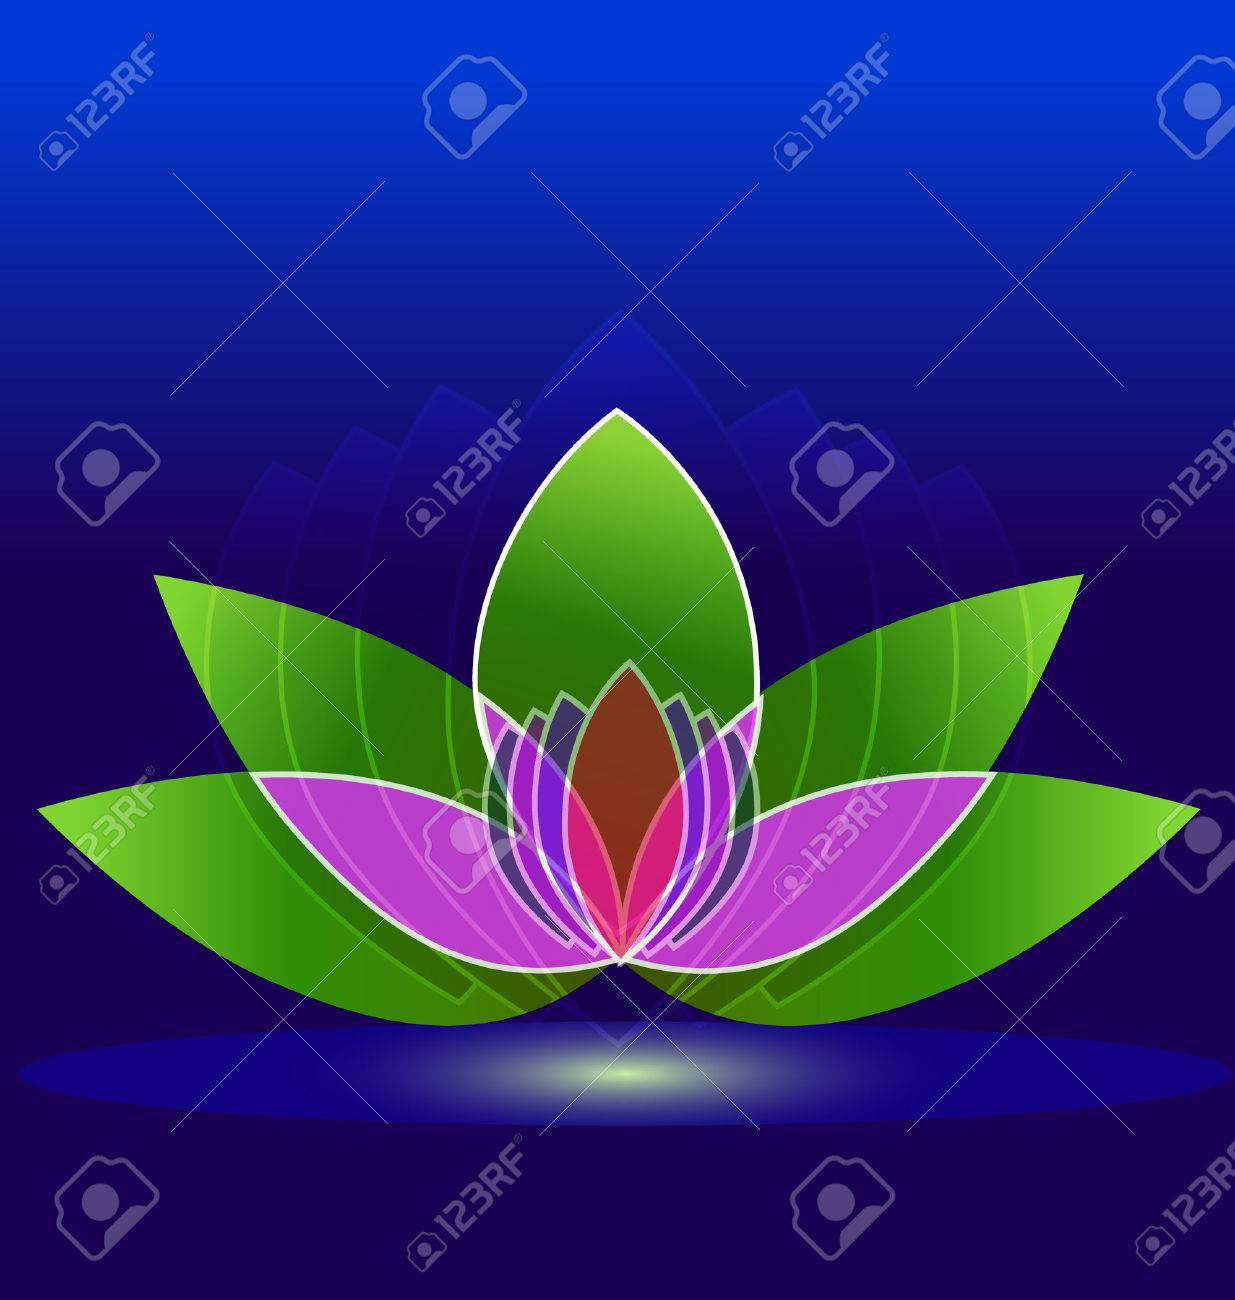 Lotus Flower On Water Icon Design Background Royalty Free Cliparts